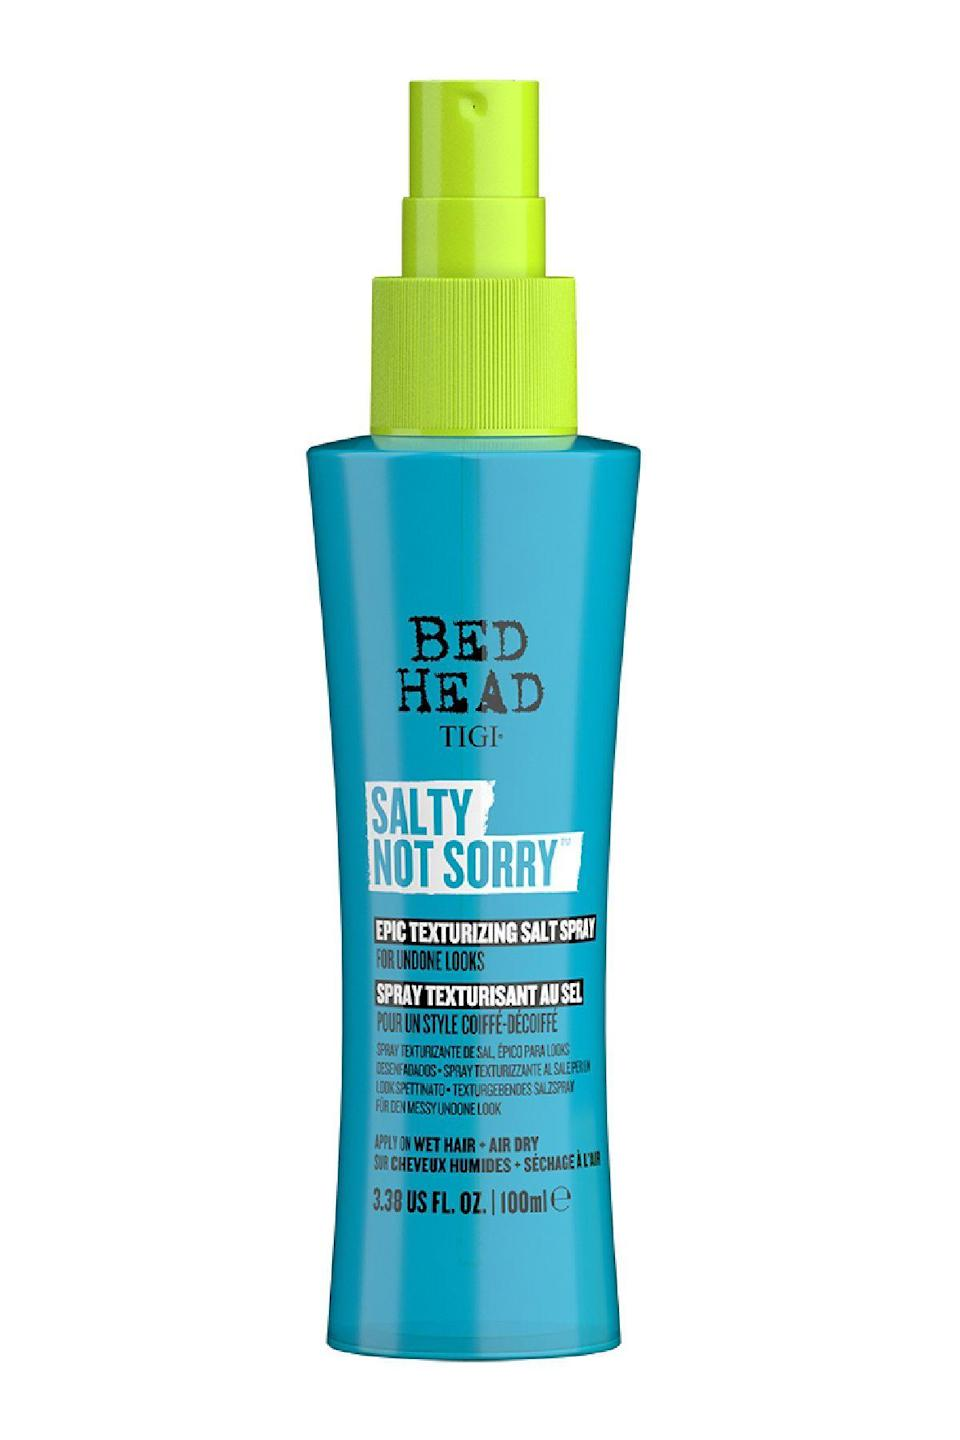 """<p><strong>Bed Head</strong></p><p>ulta.com</p><p><strong>$17.99</strong></p><p><a href=""""https://go.redirectingat.com?id=74968X1596630&url=https%3A%2F%2Fwww.ulta.com%2Fsalty-not-sorry-epic-texturizing-salt-spray%3FproductId%3Dpimprod2022519&sref=https%3A%2F%2Fwww.marieclaire.com%2Fbeauty%2Fnews%2Fg2902%2Fbest-beach-wave-salt-sprays%2F"""" rel=""""nofollow noopener"""" target=""""_blank"""" data-ylk=""""slk:SHOP IT"""" class=""""link rapid-noclick-resp"""">SHOP IT</a></p><p>If you are looking for a little bit of hold, a little gritty grip, and a lot of tousled matte texture (but no heavy residue), this brand new offering from Bed Head might be the answer to your hair prayers. Extra credit since sodium chloride is the second ingredient listed...<br><br></p>"""